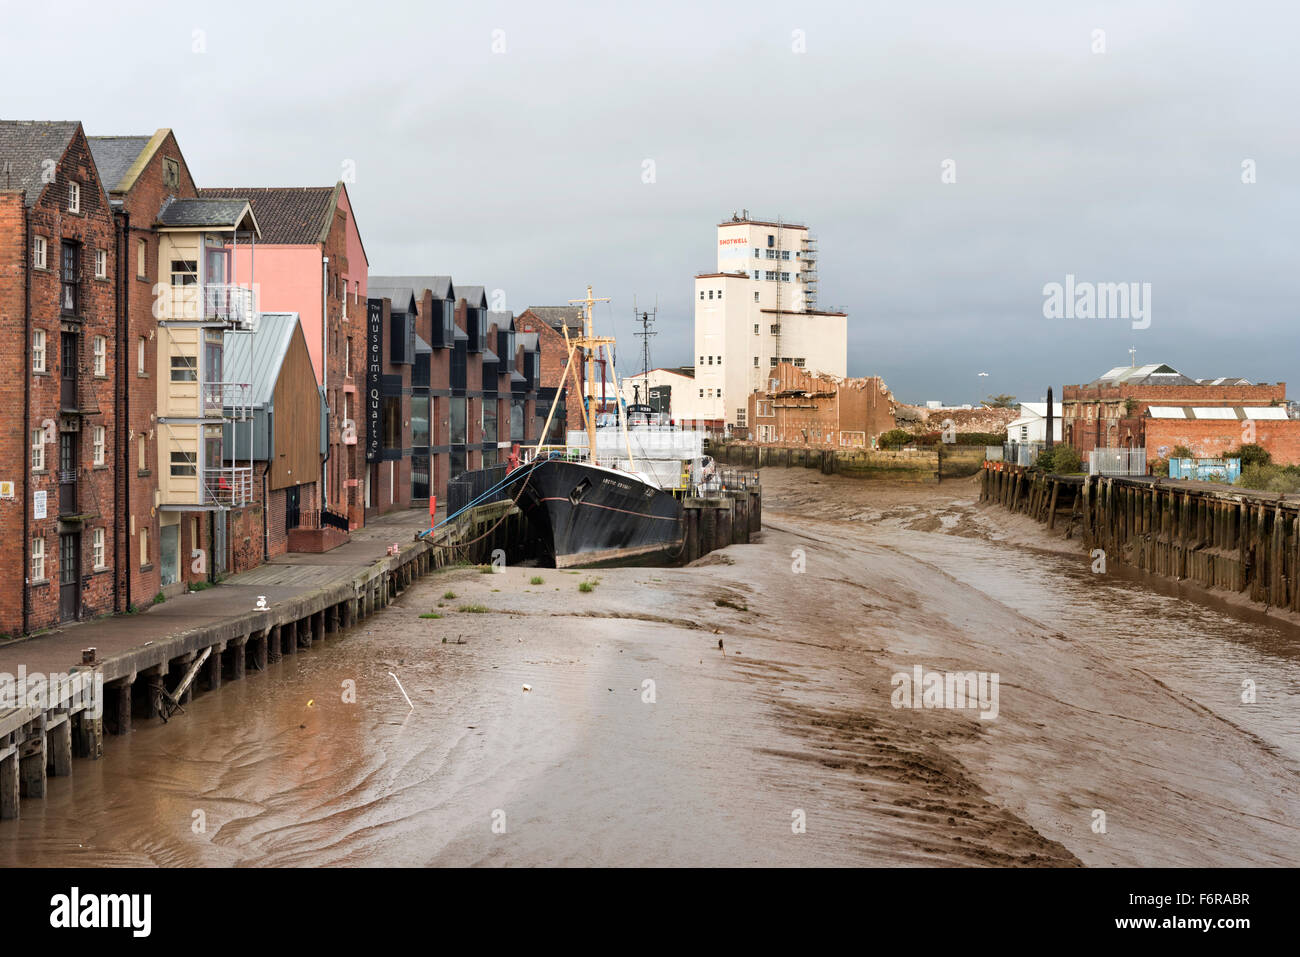 The River Hull, with the former trawler Arctic Corsair moored next to the Museum's Quarter and flats, Kingston - Stock Image